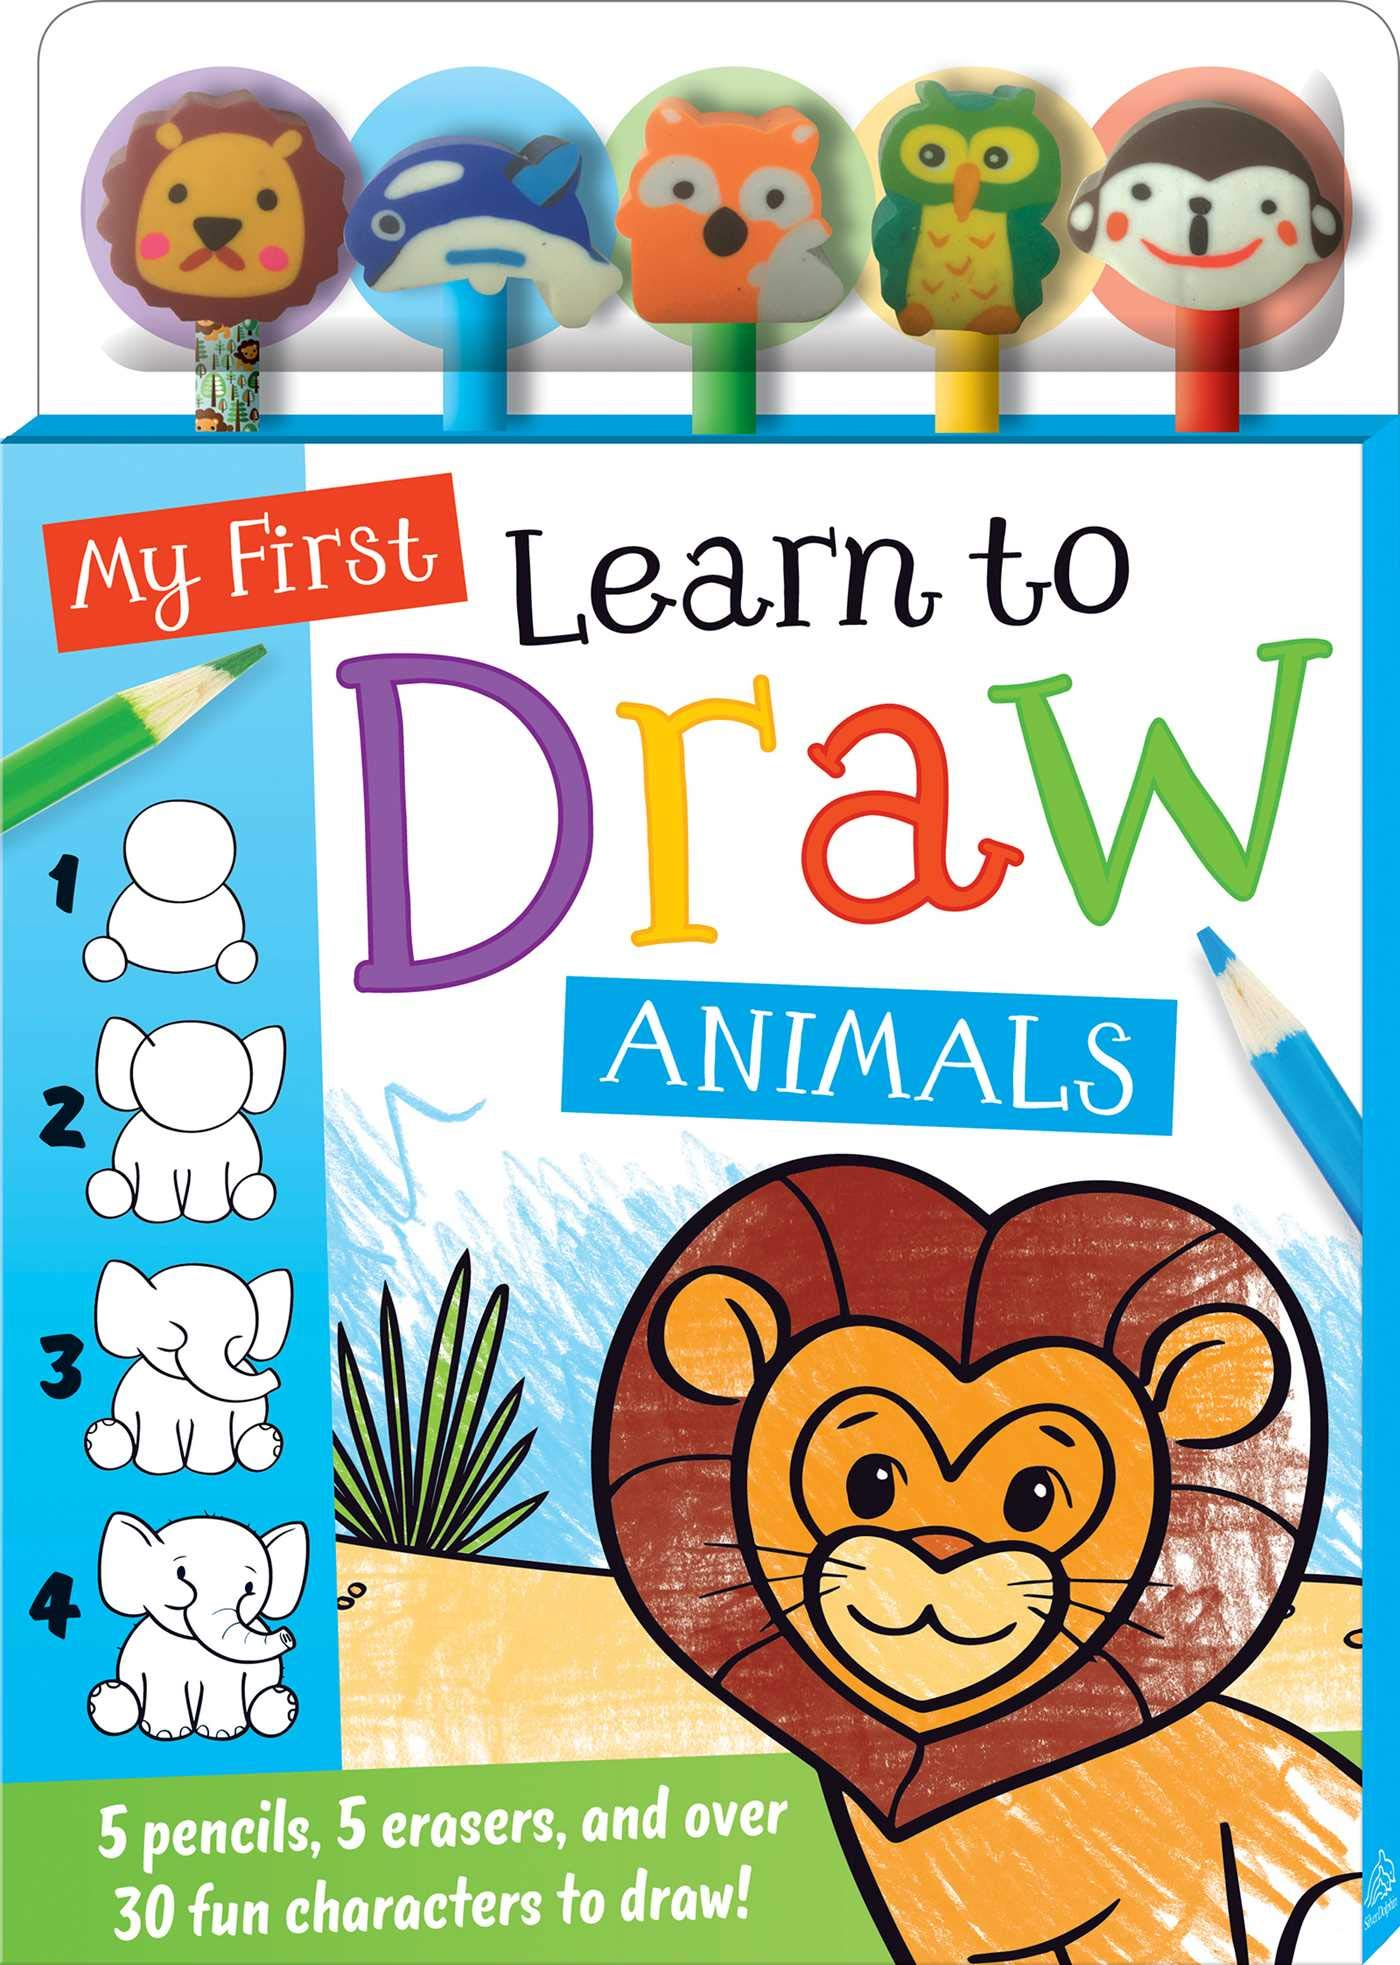 My First Learn to Draw: Animals (Pencil Toppers) ebook